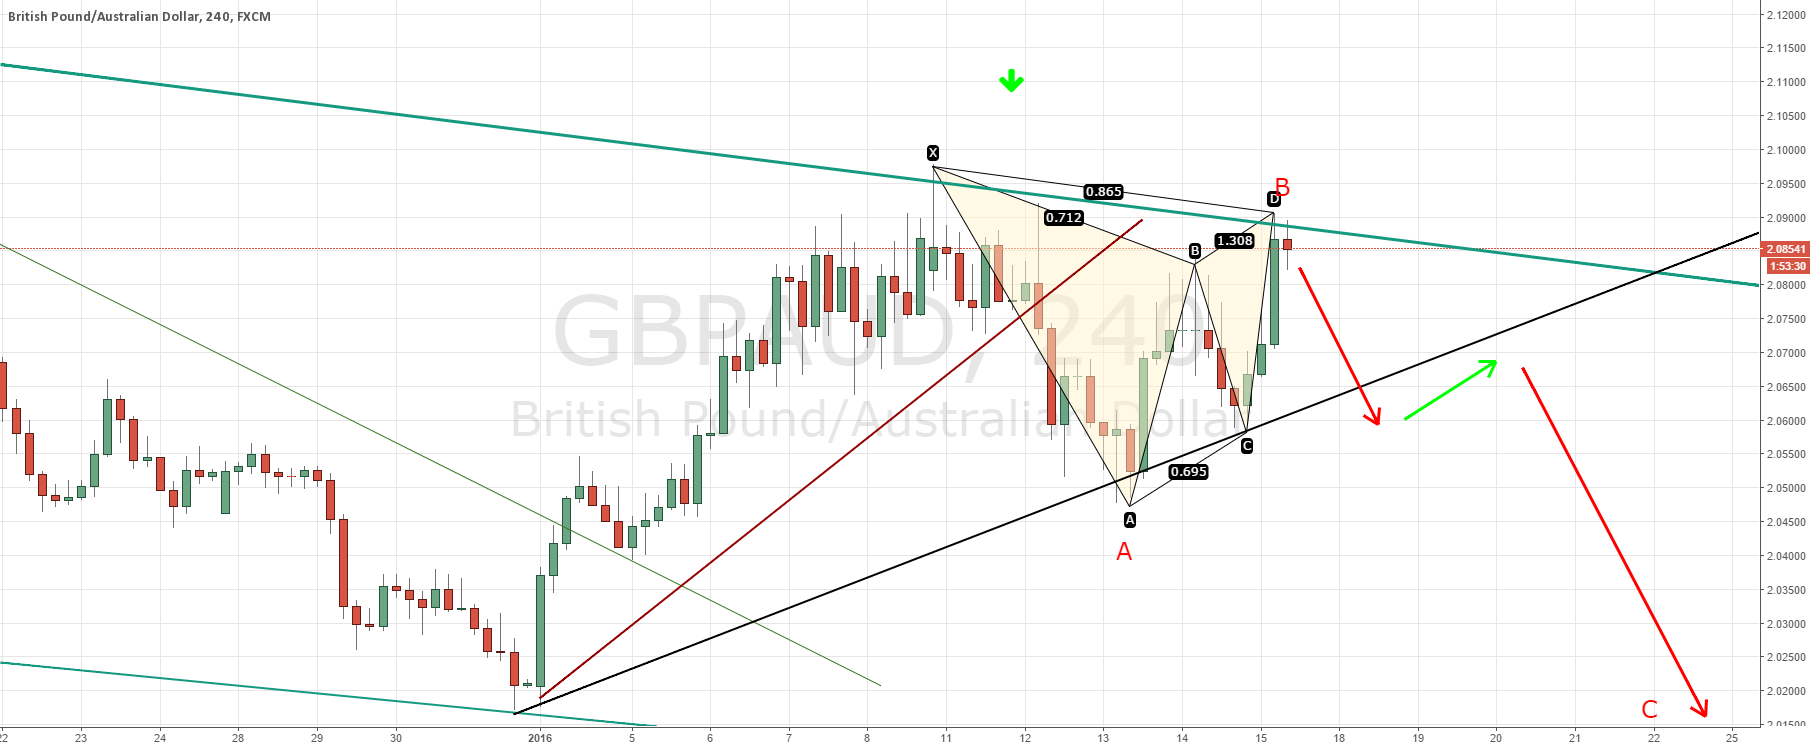 GBPAUD short term short before major move higher